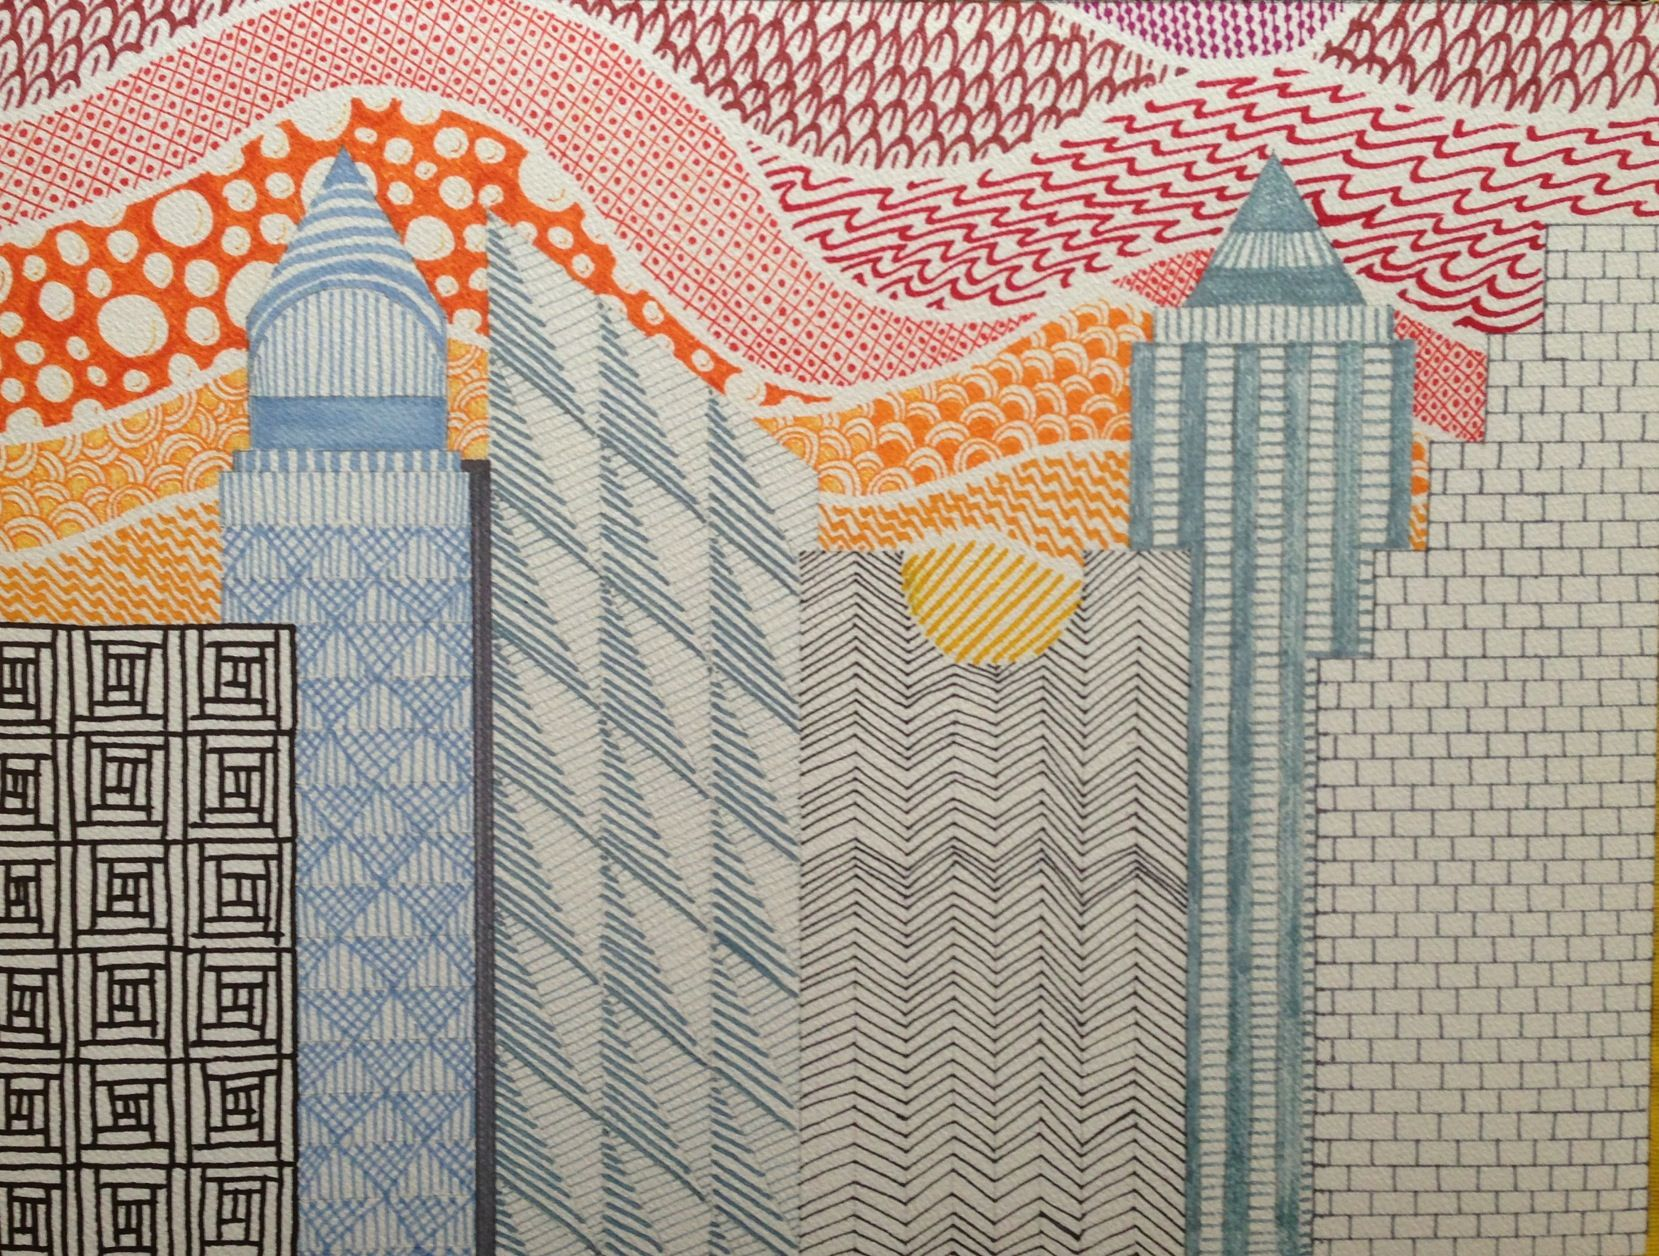 Zentangle City Teaching Art Mural Zentangle Tutorial